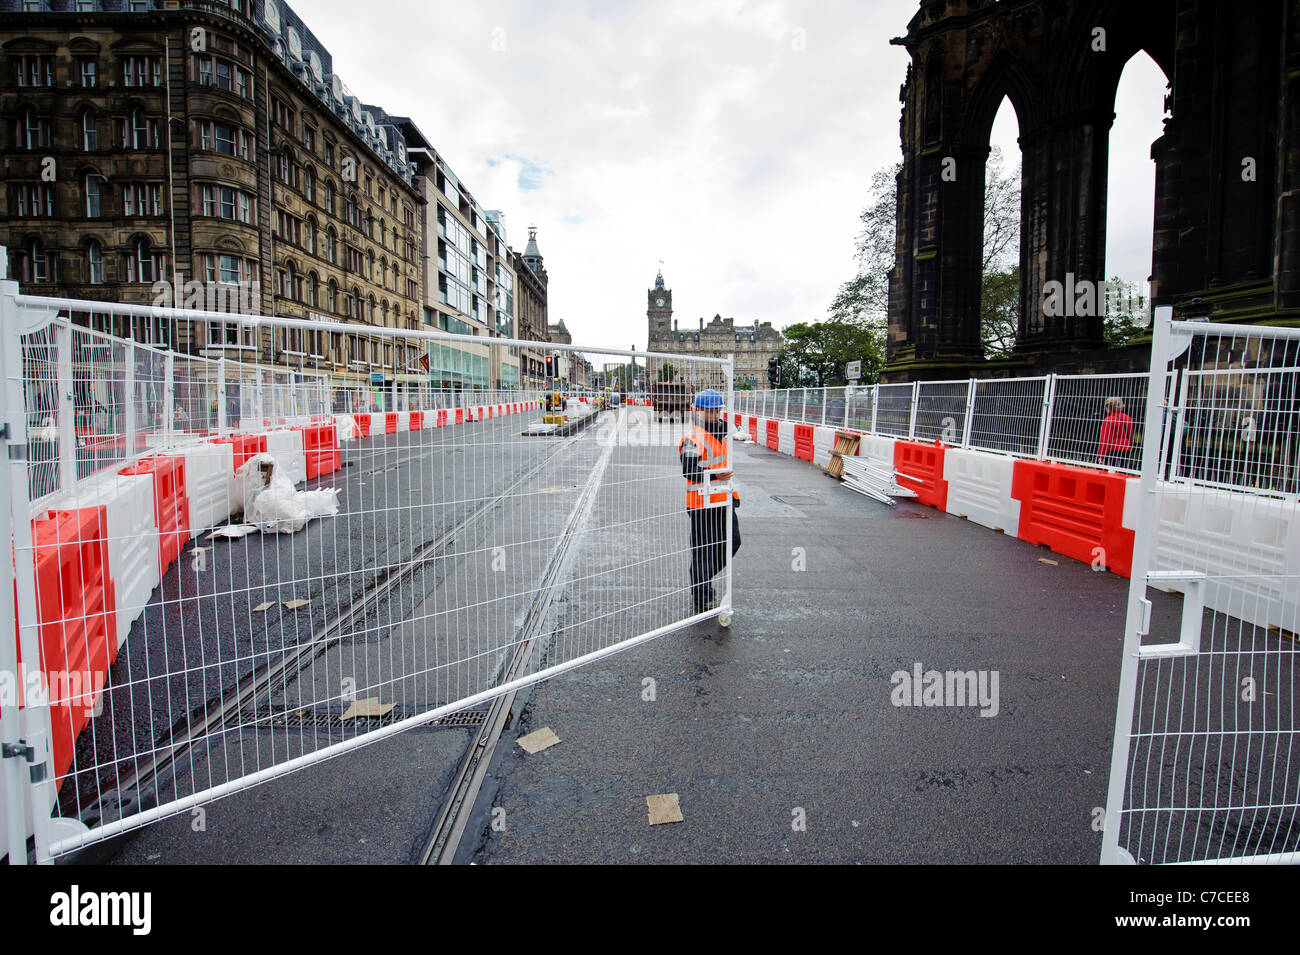 Work on the Edinburgh Tram system completely closes Princes Street for up to 10 months from September 2011 - Stock Image